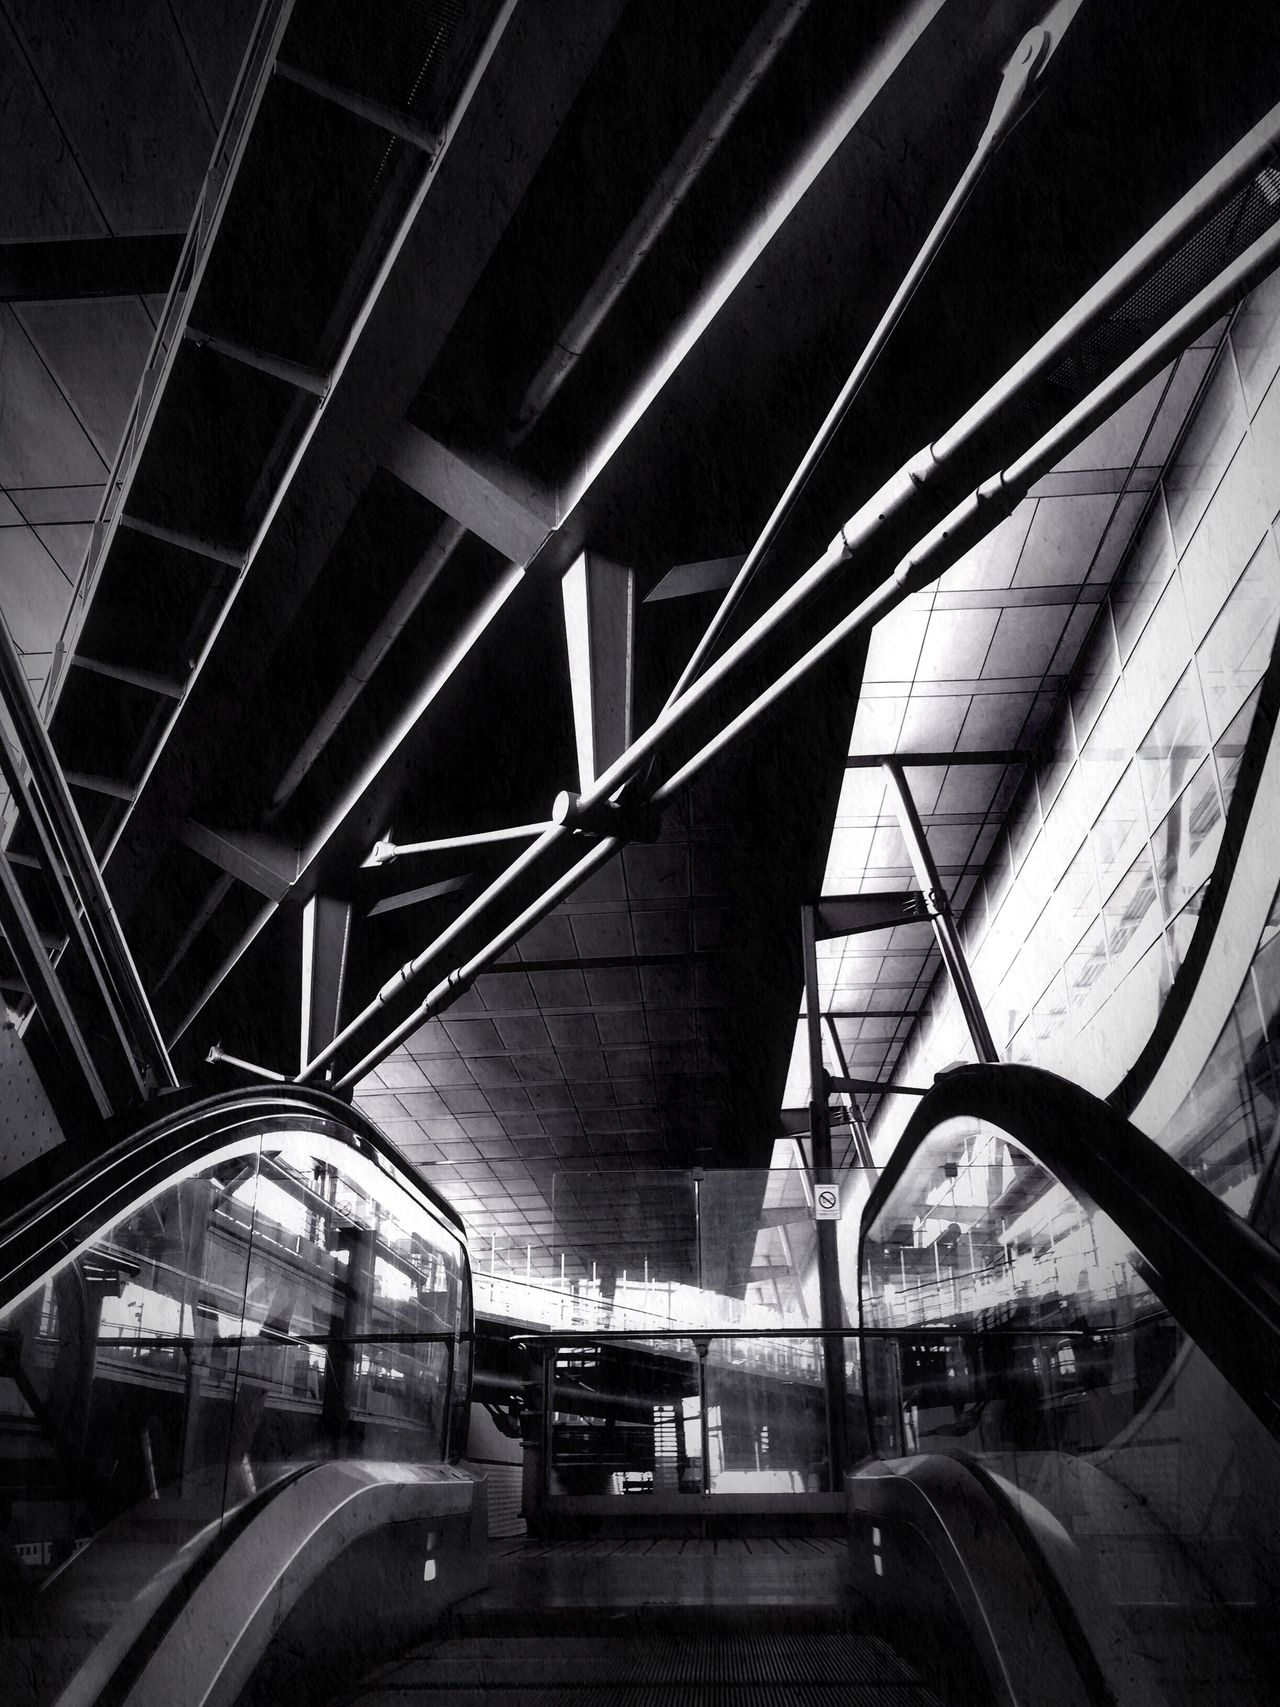 Transportation Built Structure Connection Architecture Indoors  The Architect - 2017 EyeEm Awards Blackandwhite Photography Noir Et Blanc Lines And Shapes